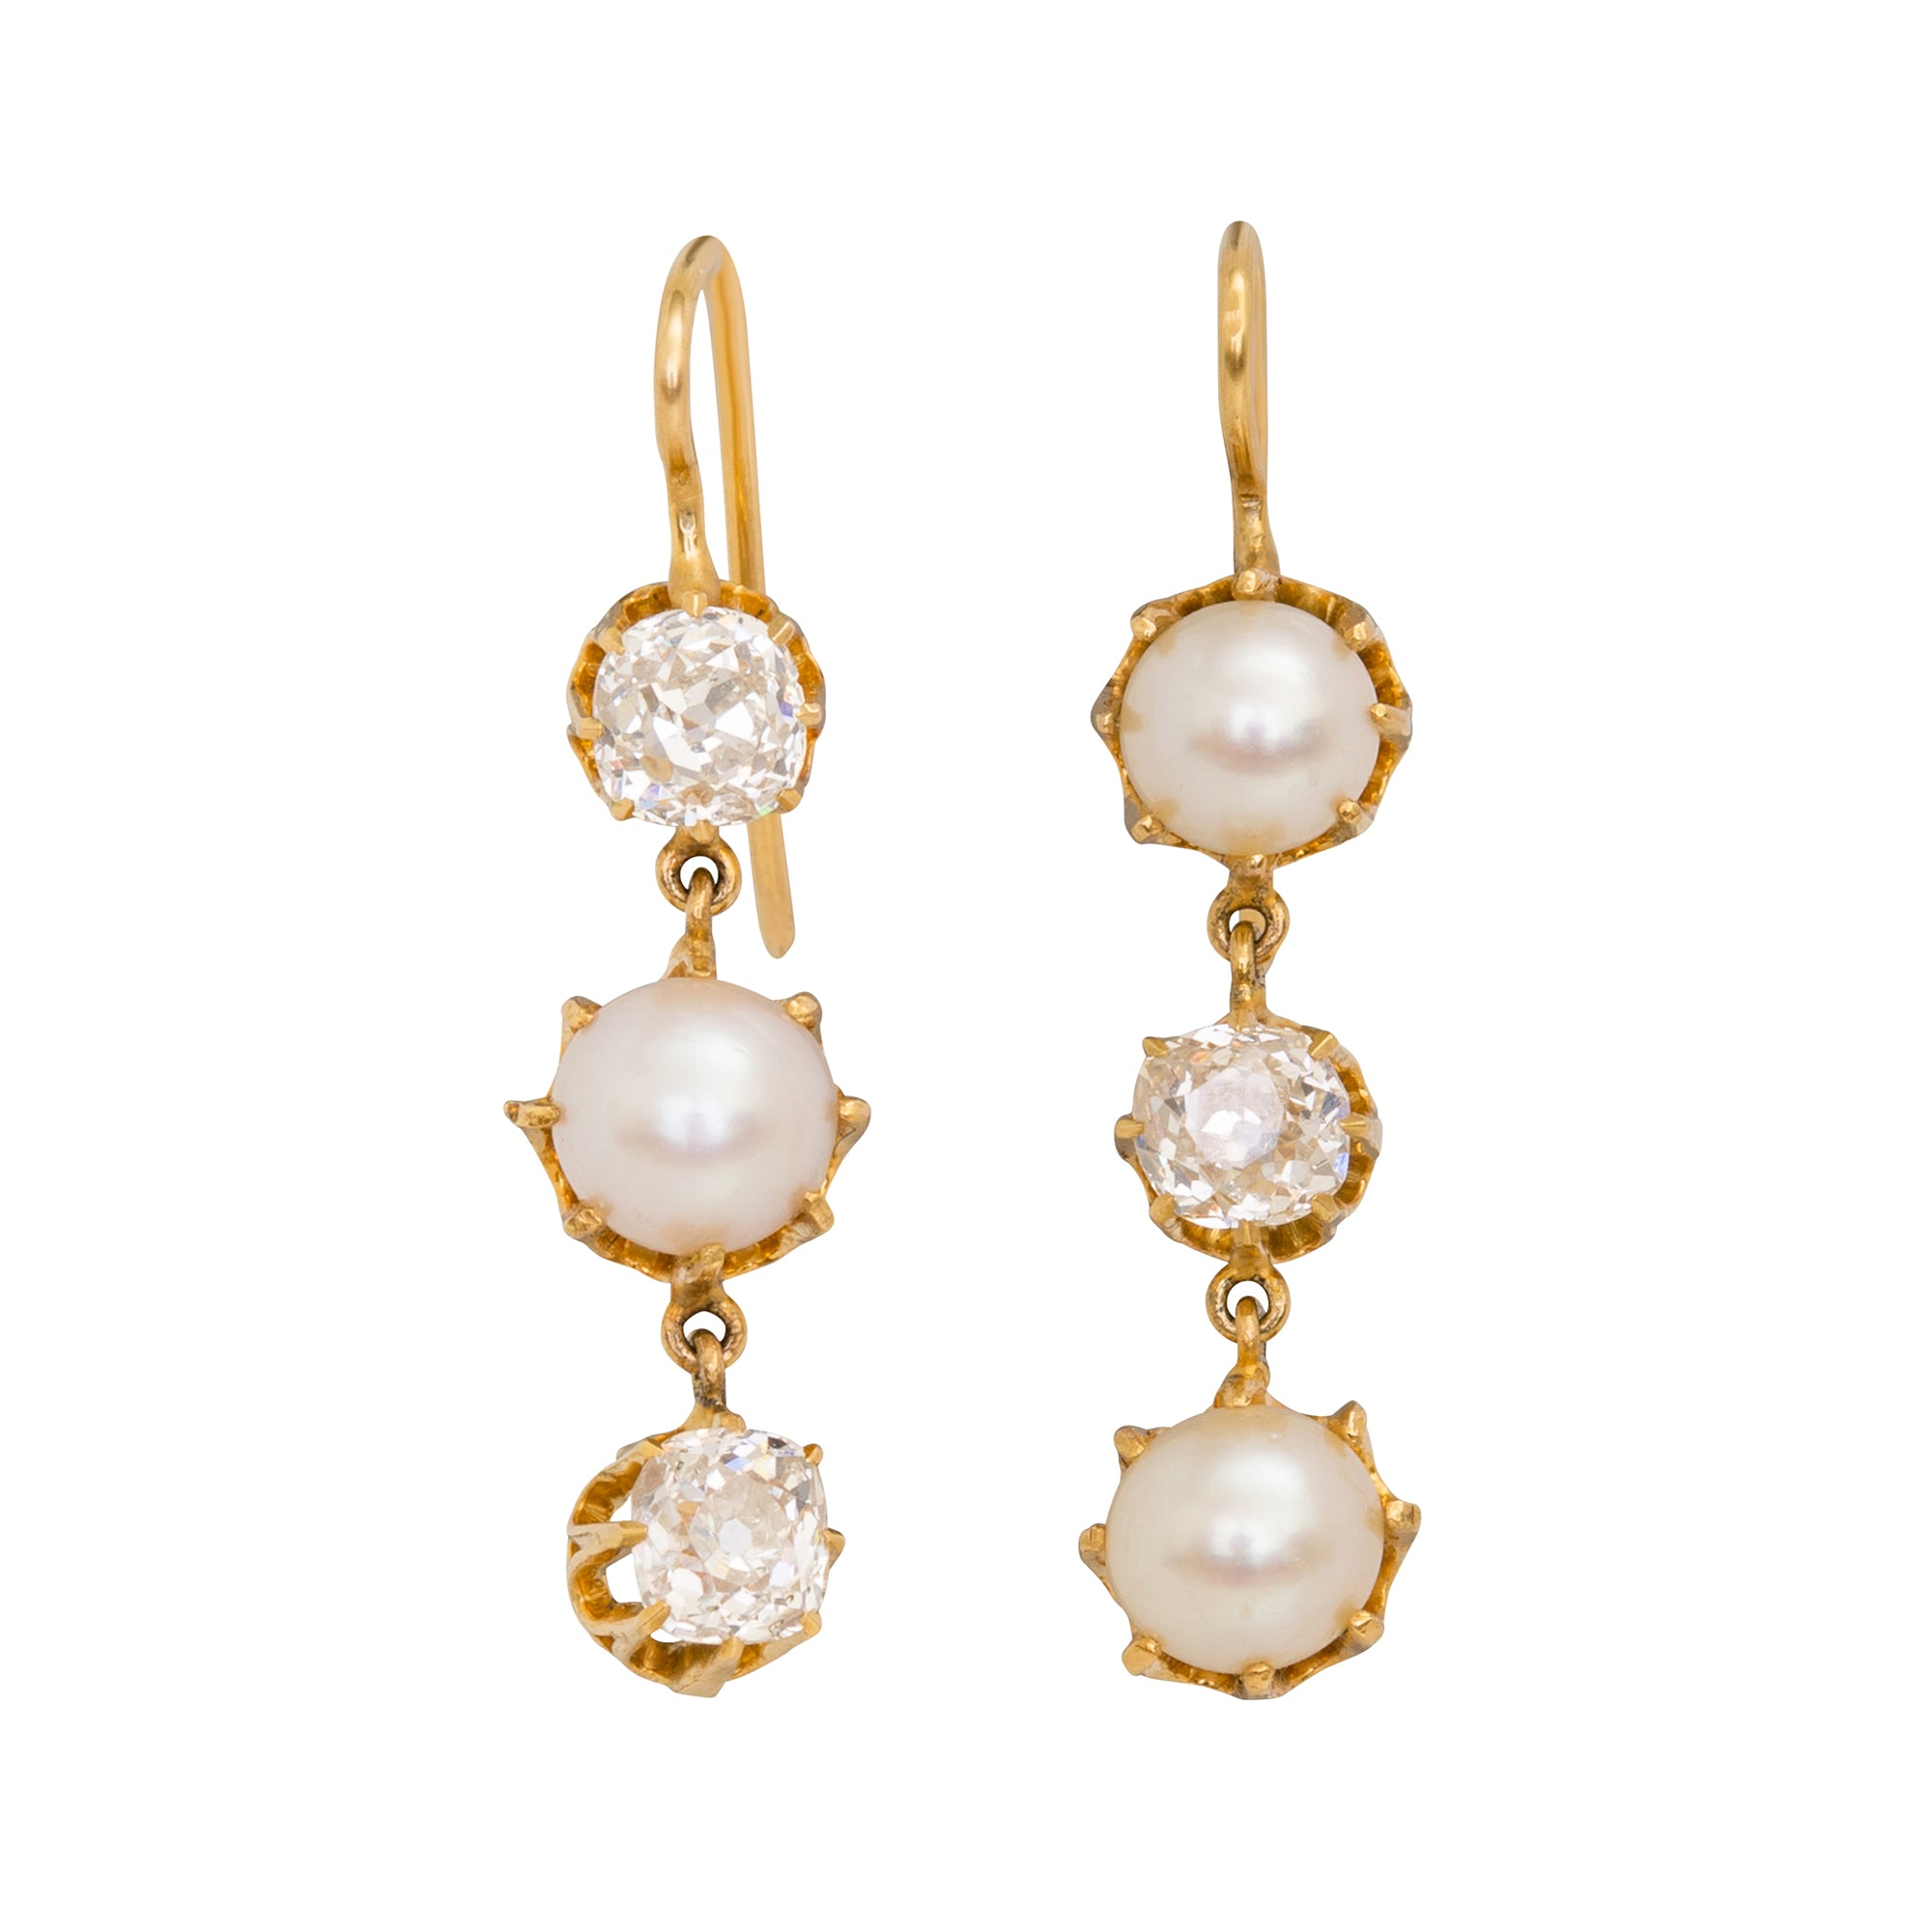 Pearl and Diamond Earrings by Renee Lewis for Broken English Jewelry